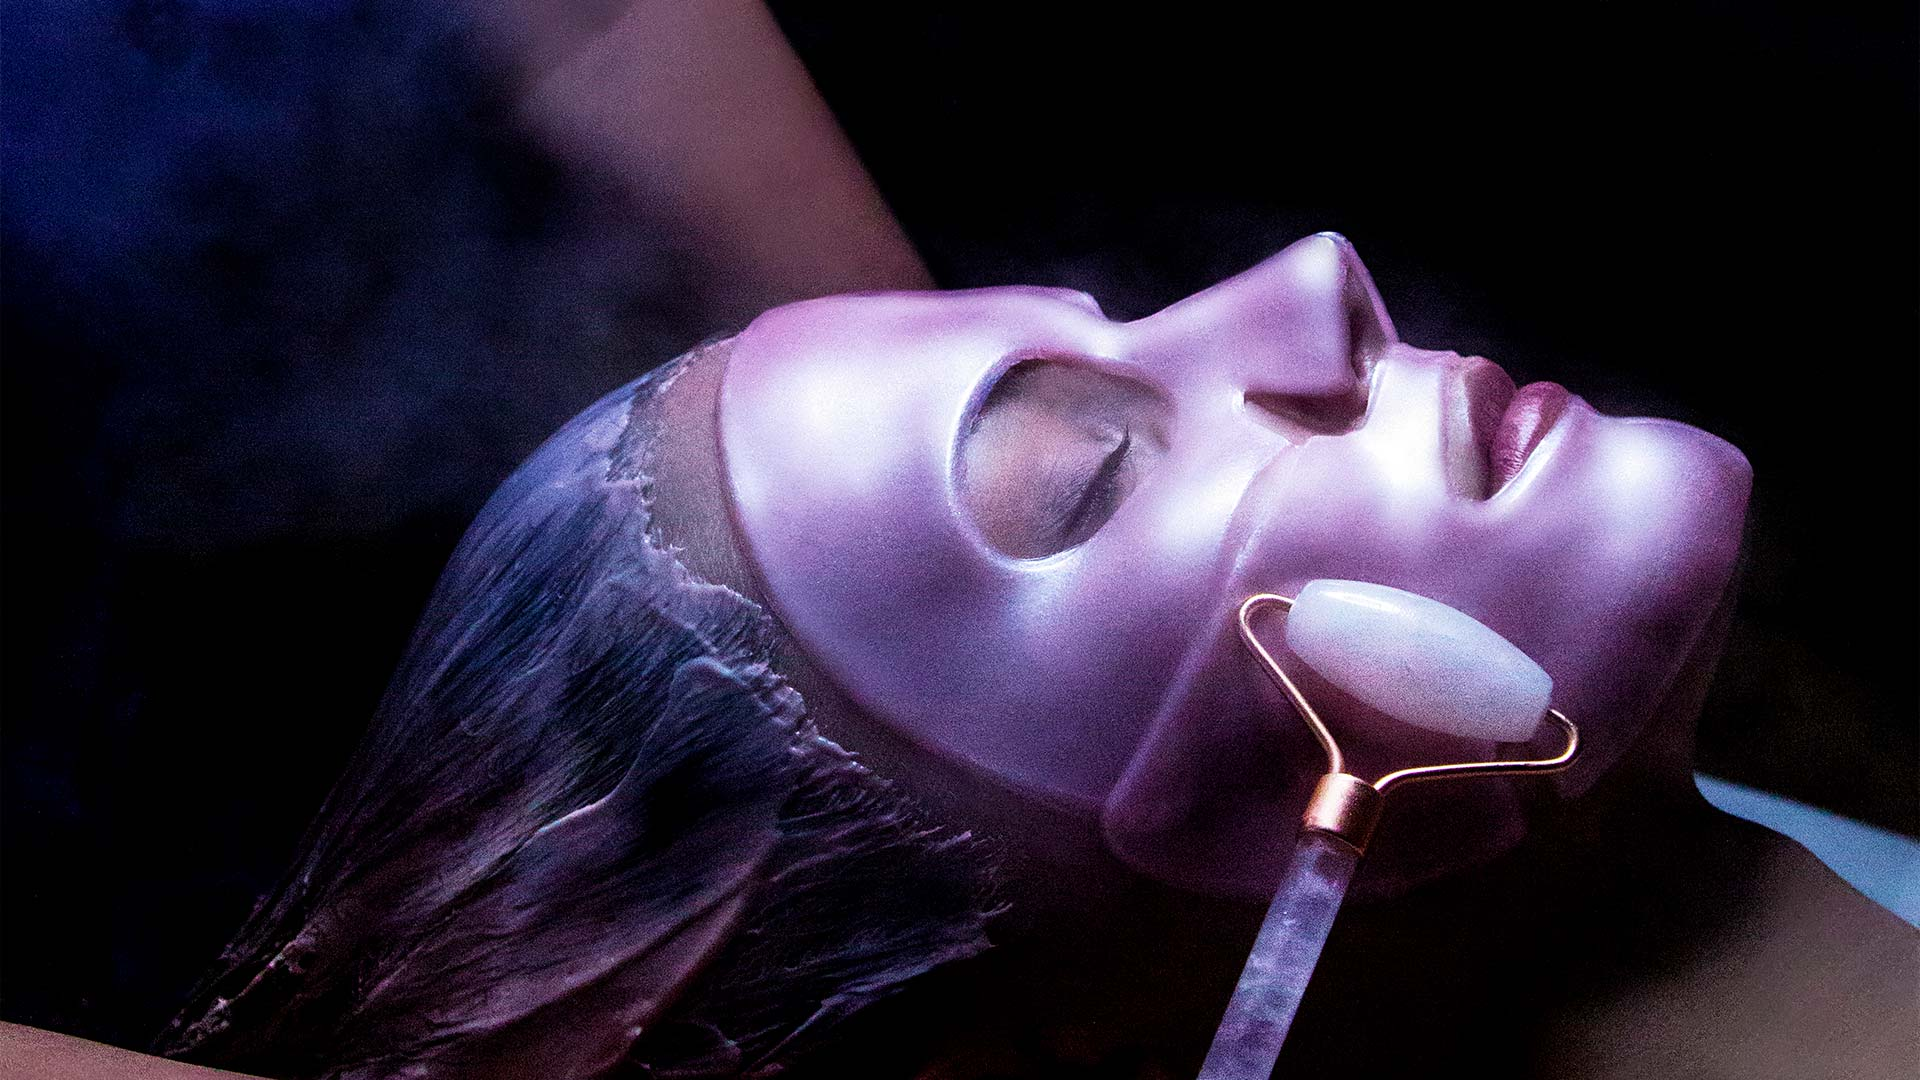 close up of a woman getting a spa treatment done. She has a pink mask on her face and a jade roller is moving across her face.